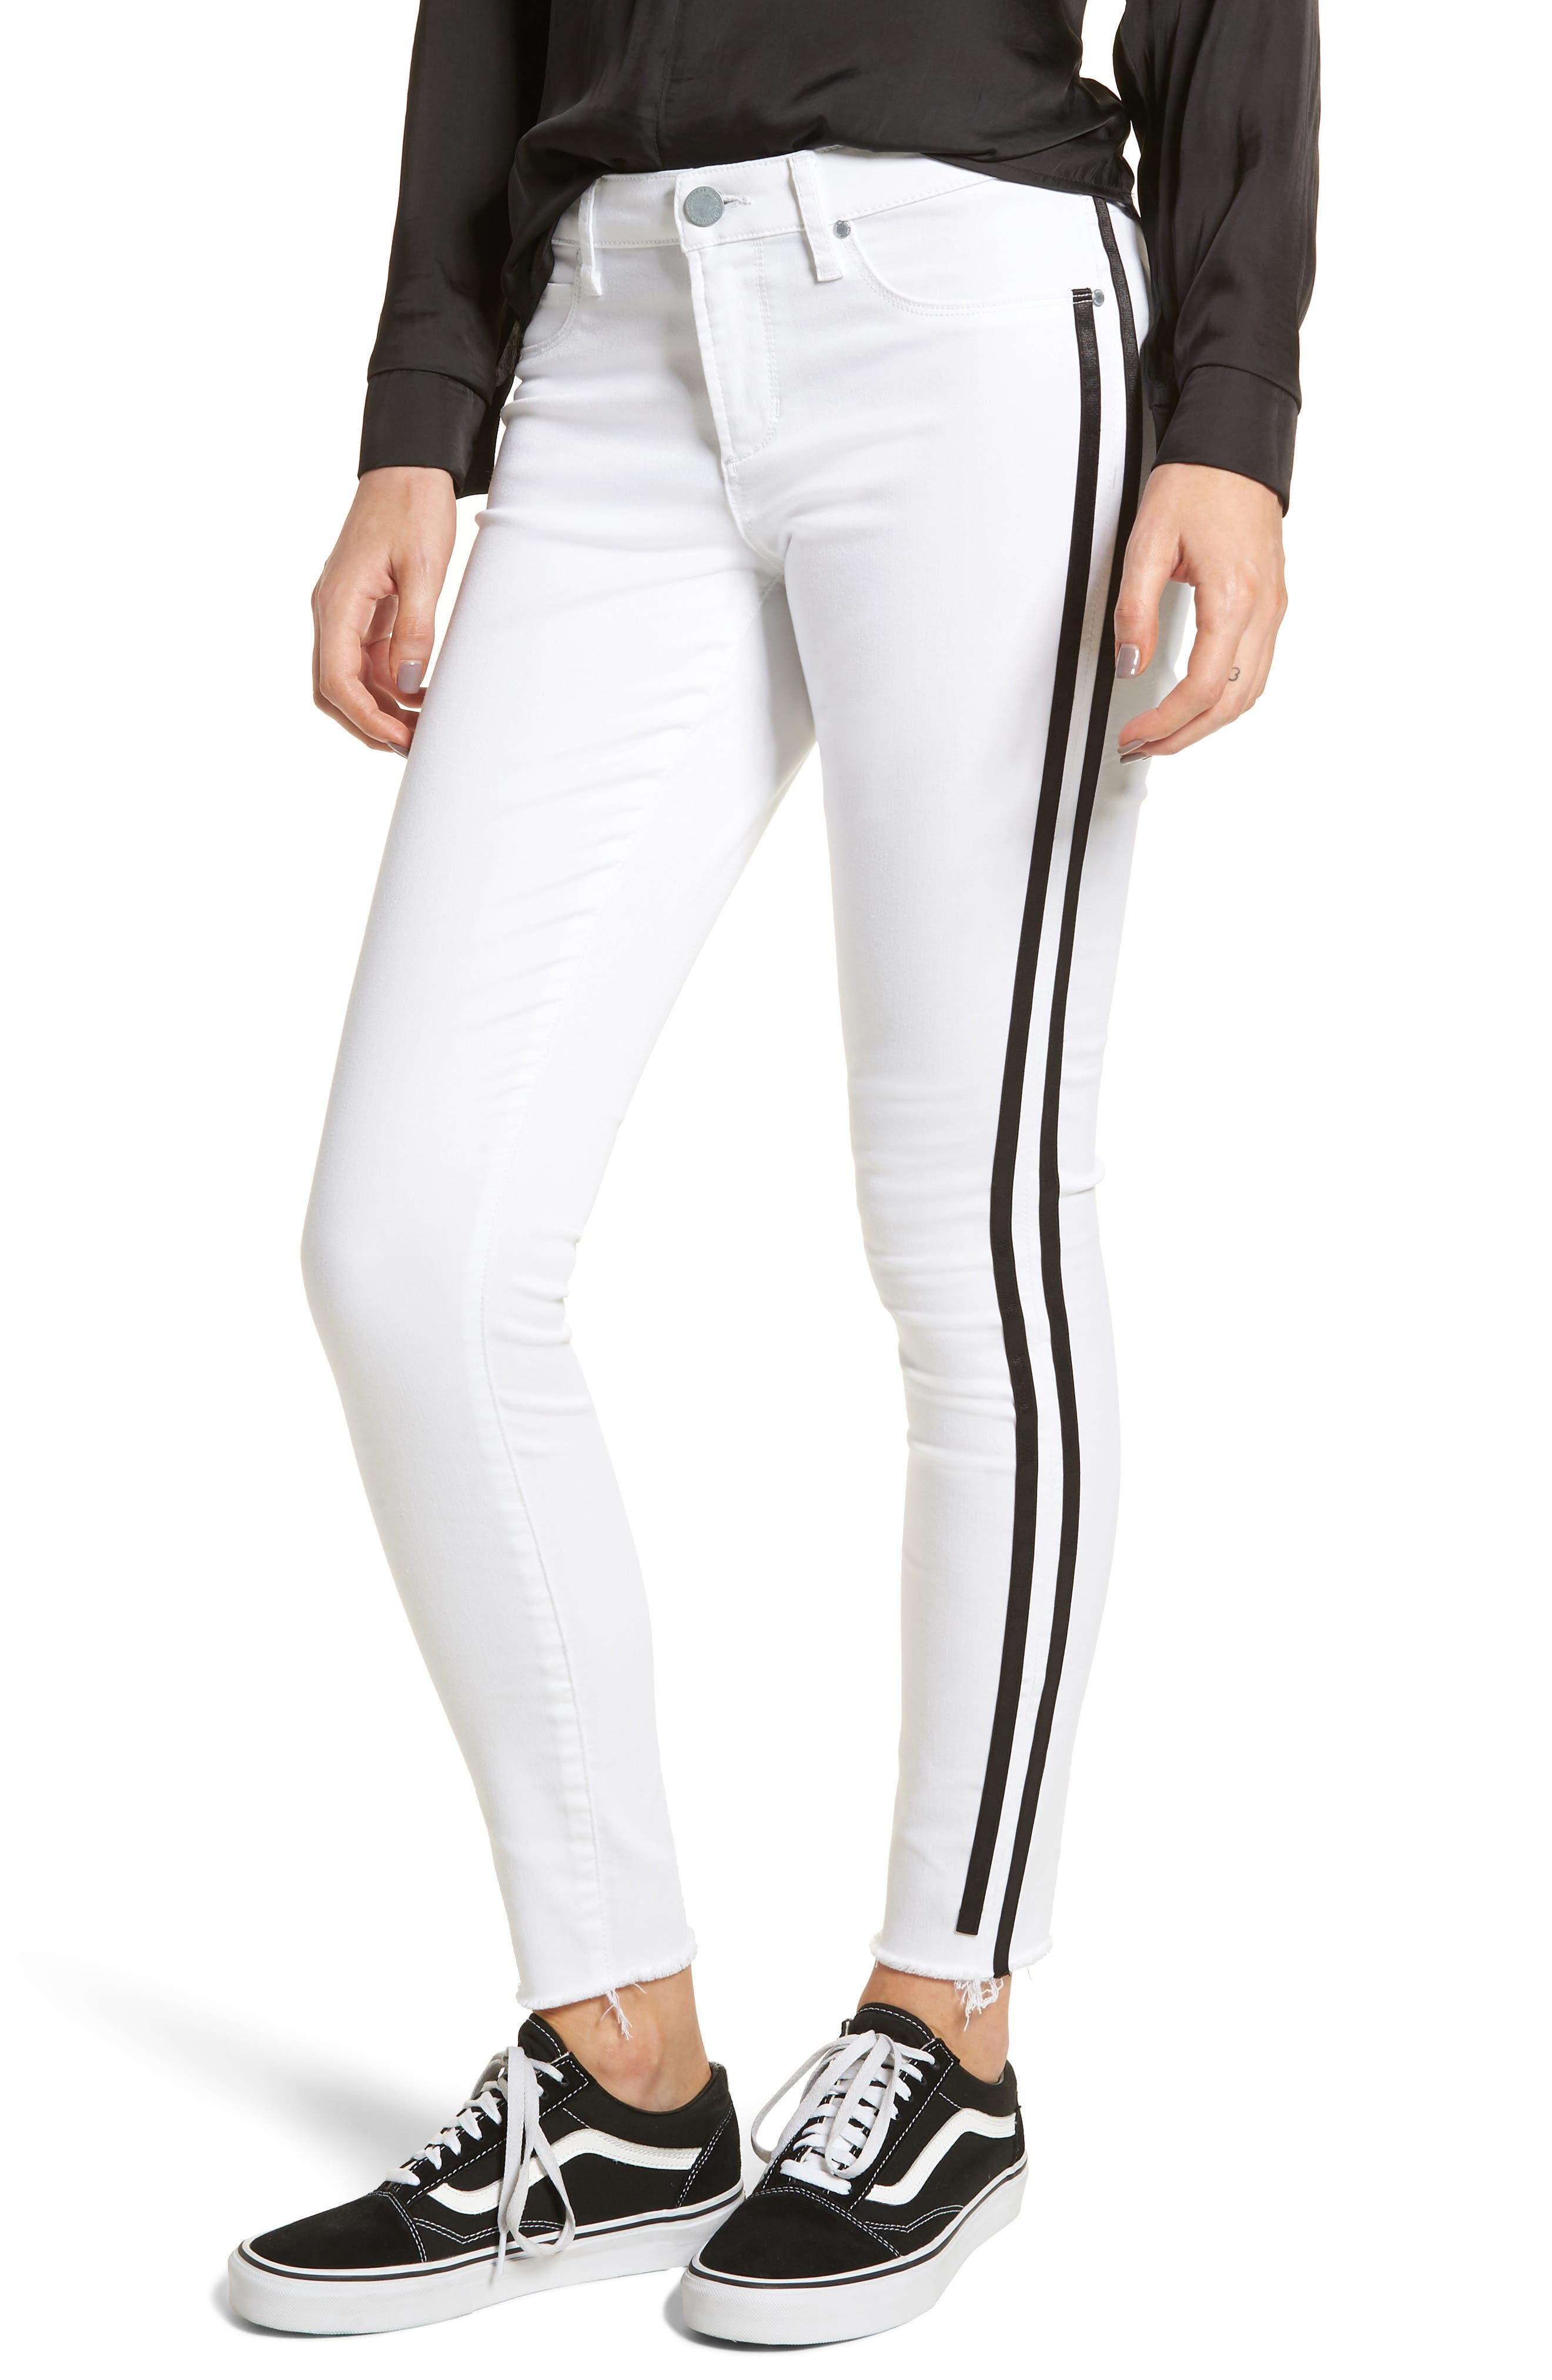 ARTICLES OF SOCIETY SARAH ACTIVE STRIPE SKINNY JEANS